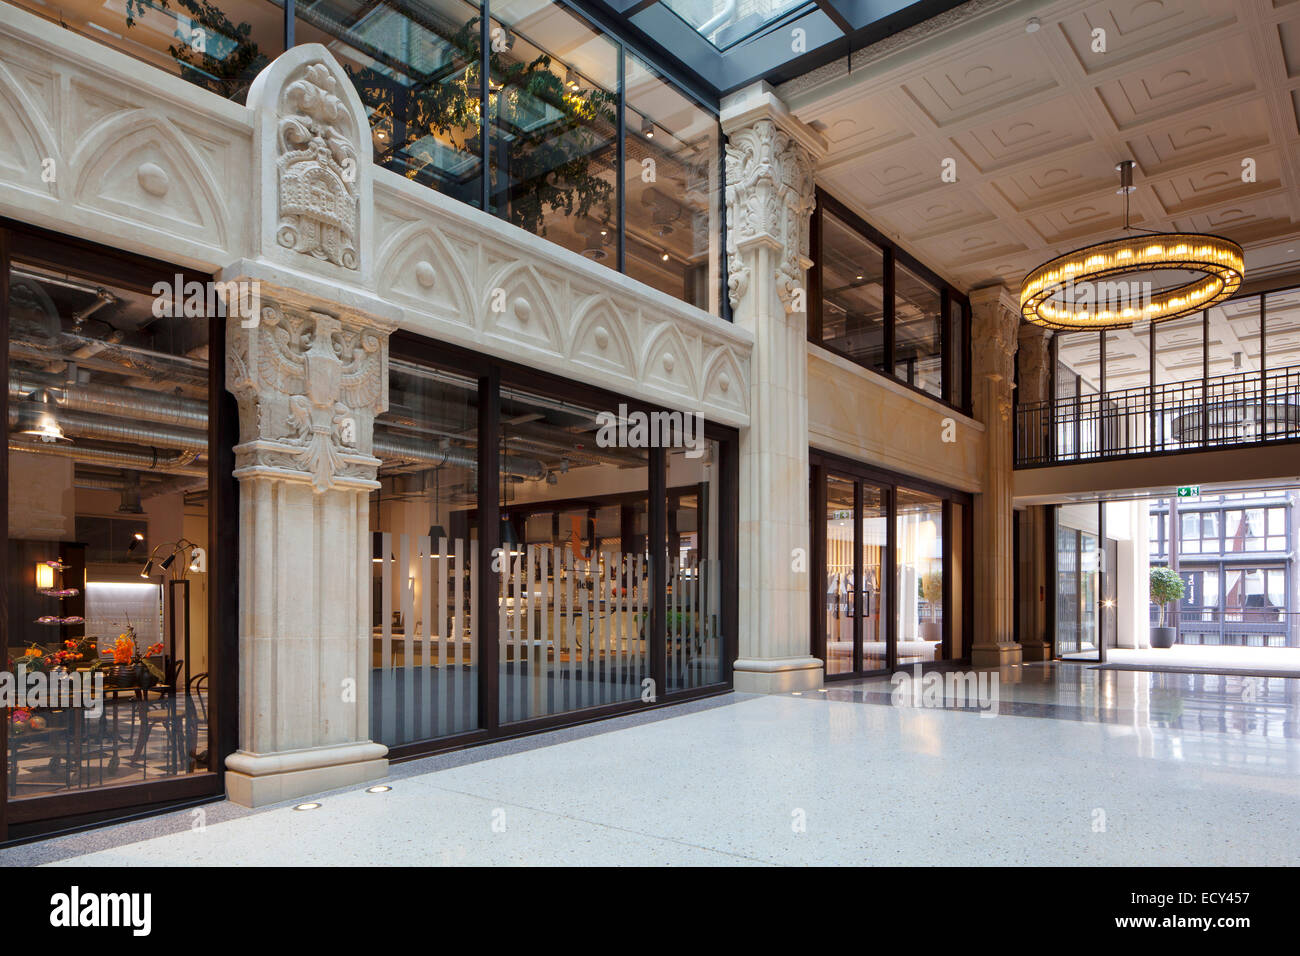 Kaisergalerie Mall High End Shops Atrium With Terrazzo